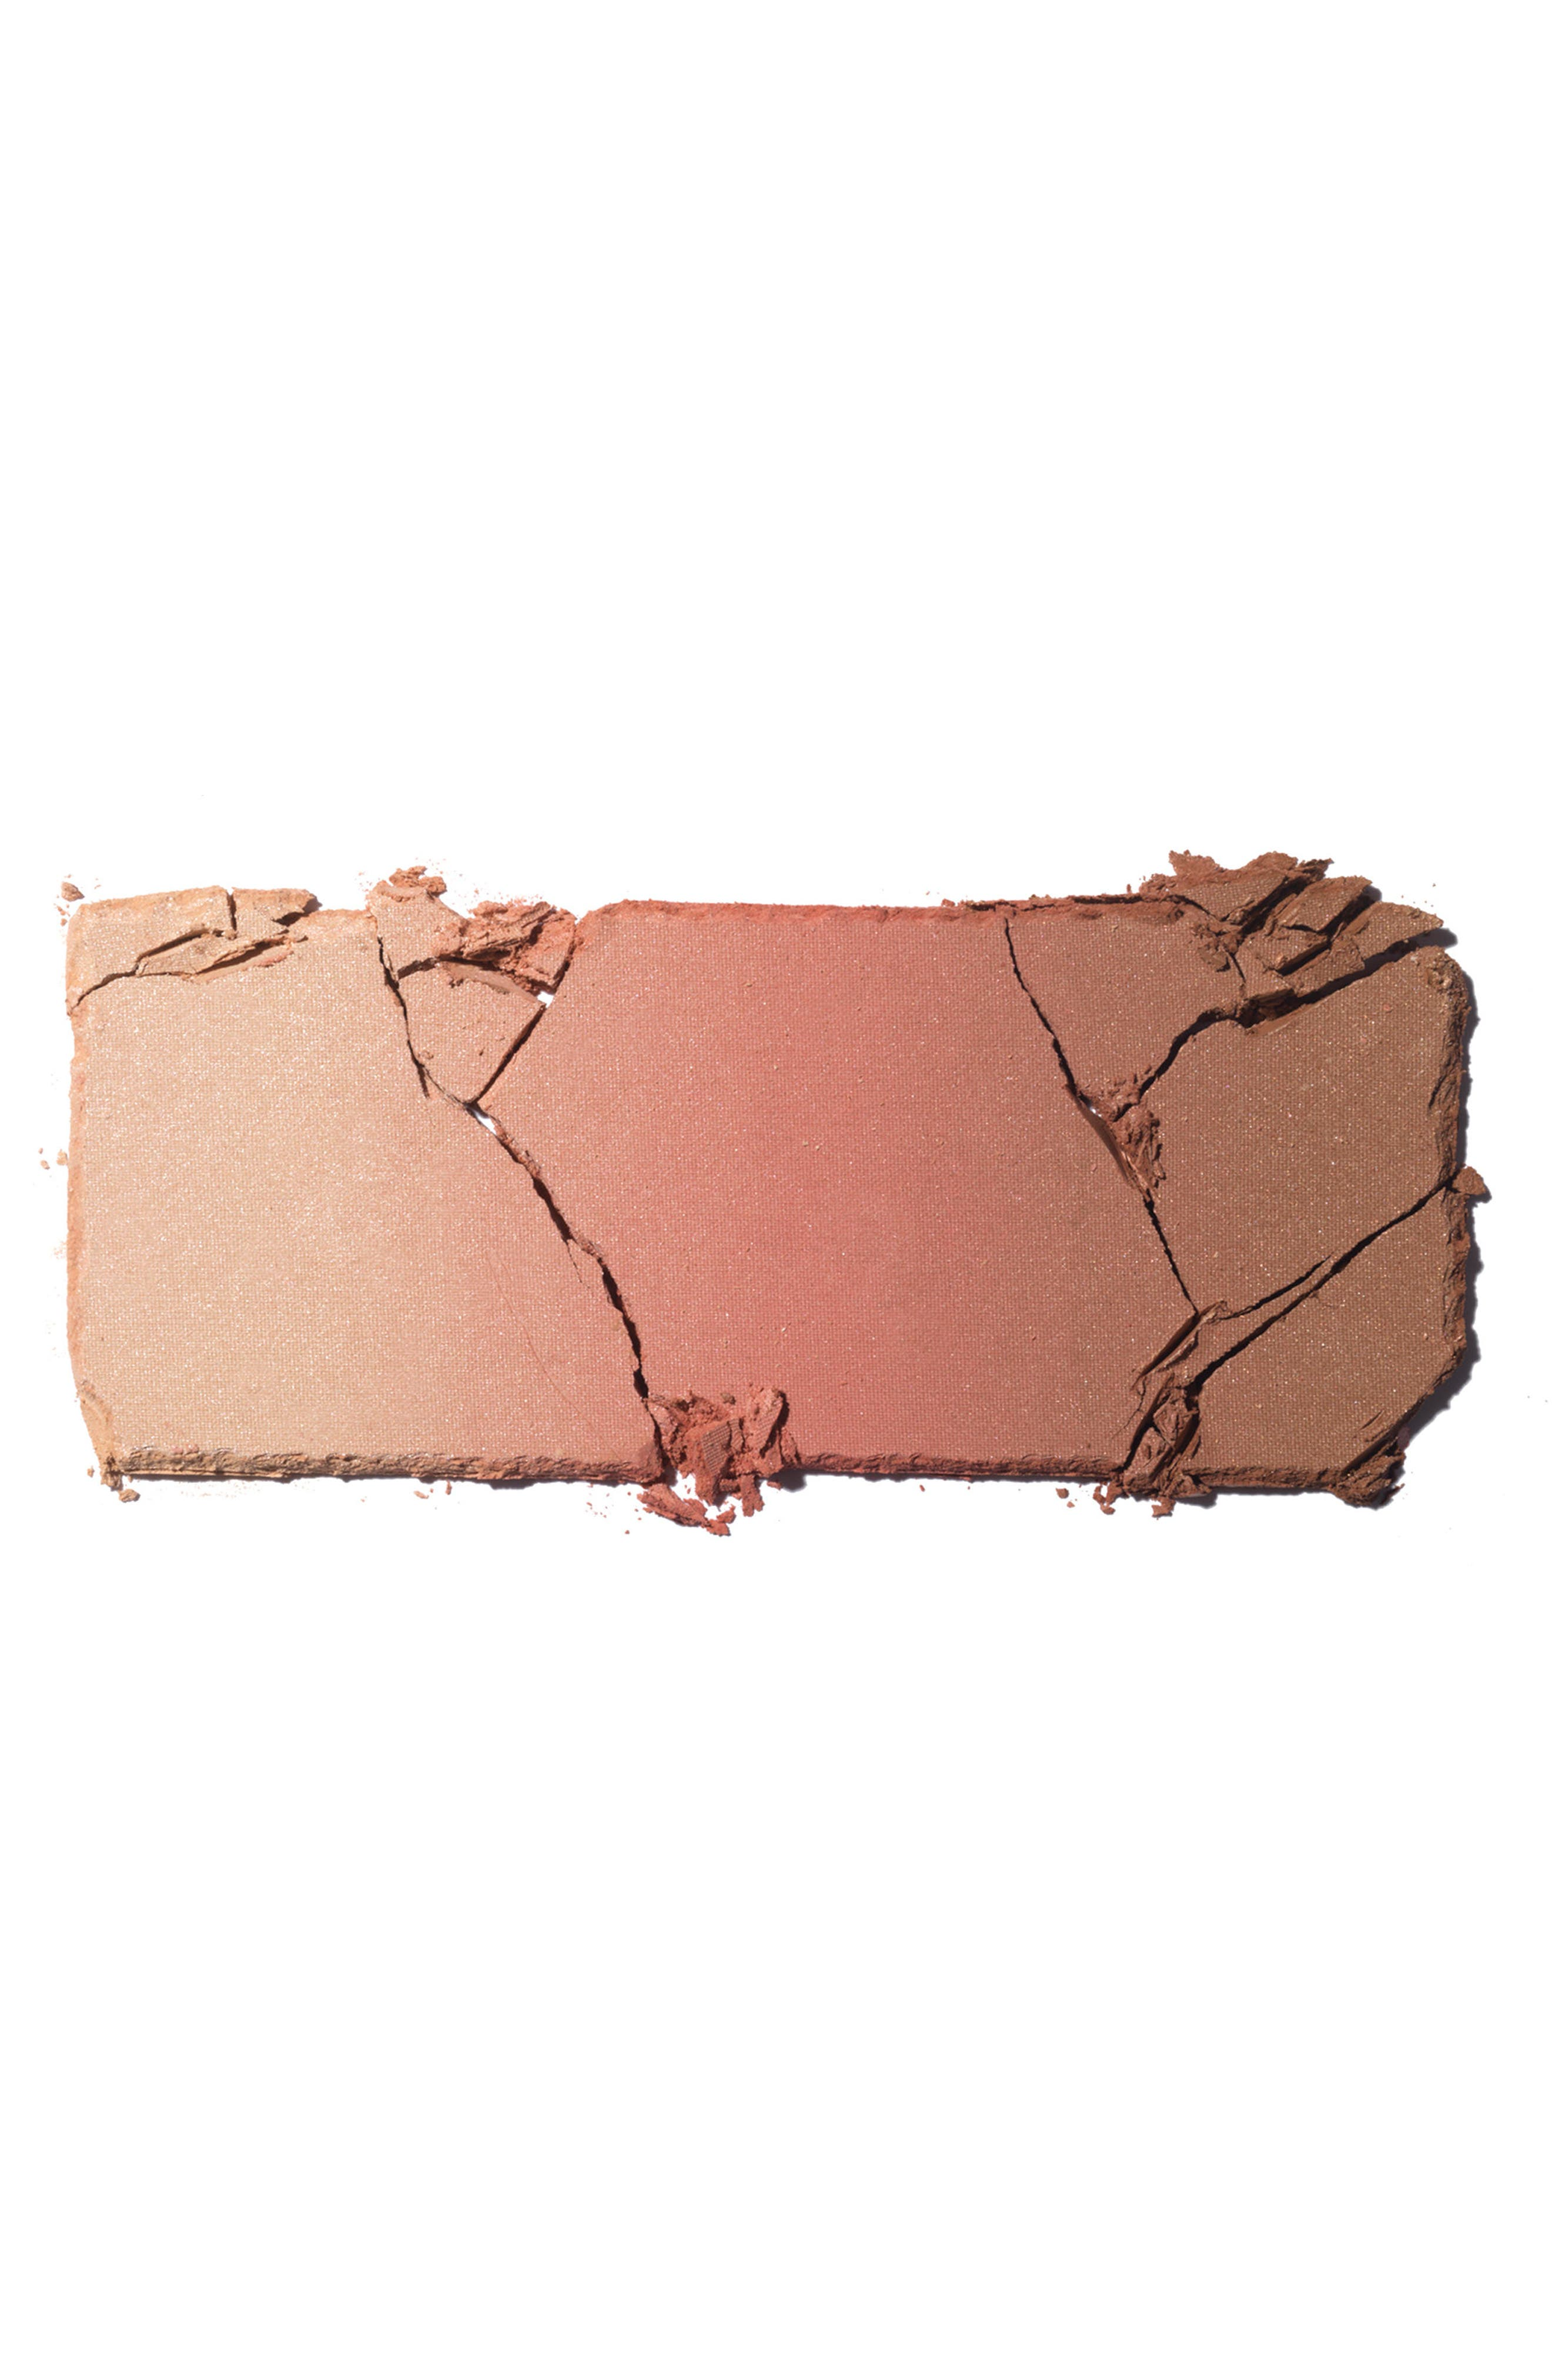 KEVYN AUCOIN BEAUTY,                             SPACE.NK.apothecary Kevyn Aucoin Beauty The Neo-Bronzer Face Palette,                             Alternate thumbnail 2, color,                             650